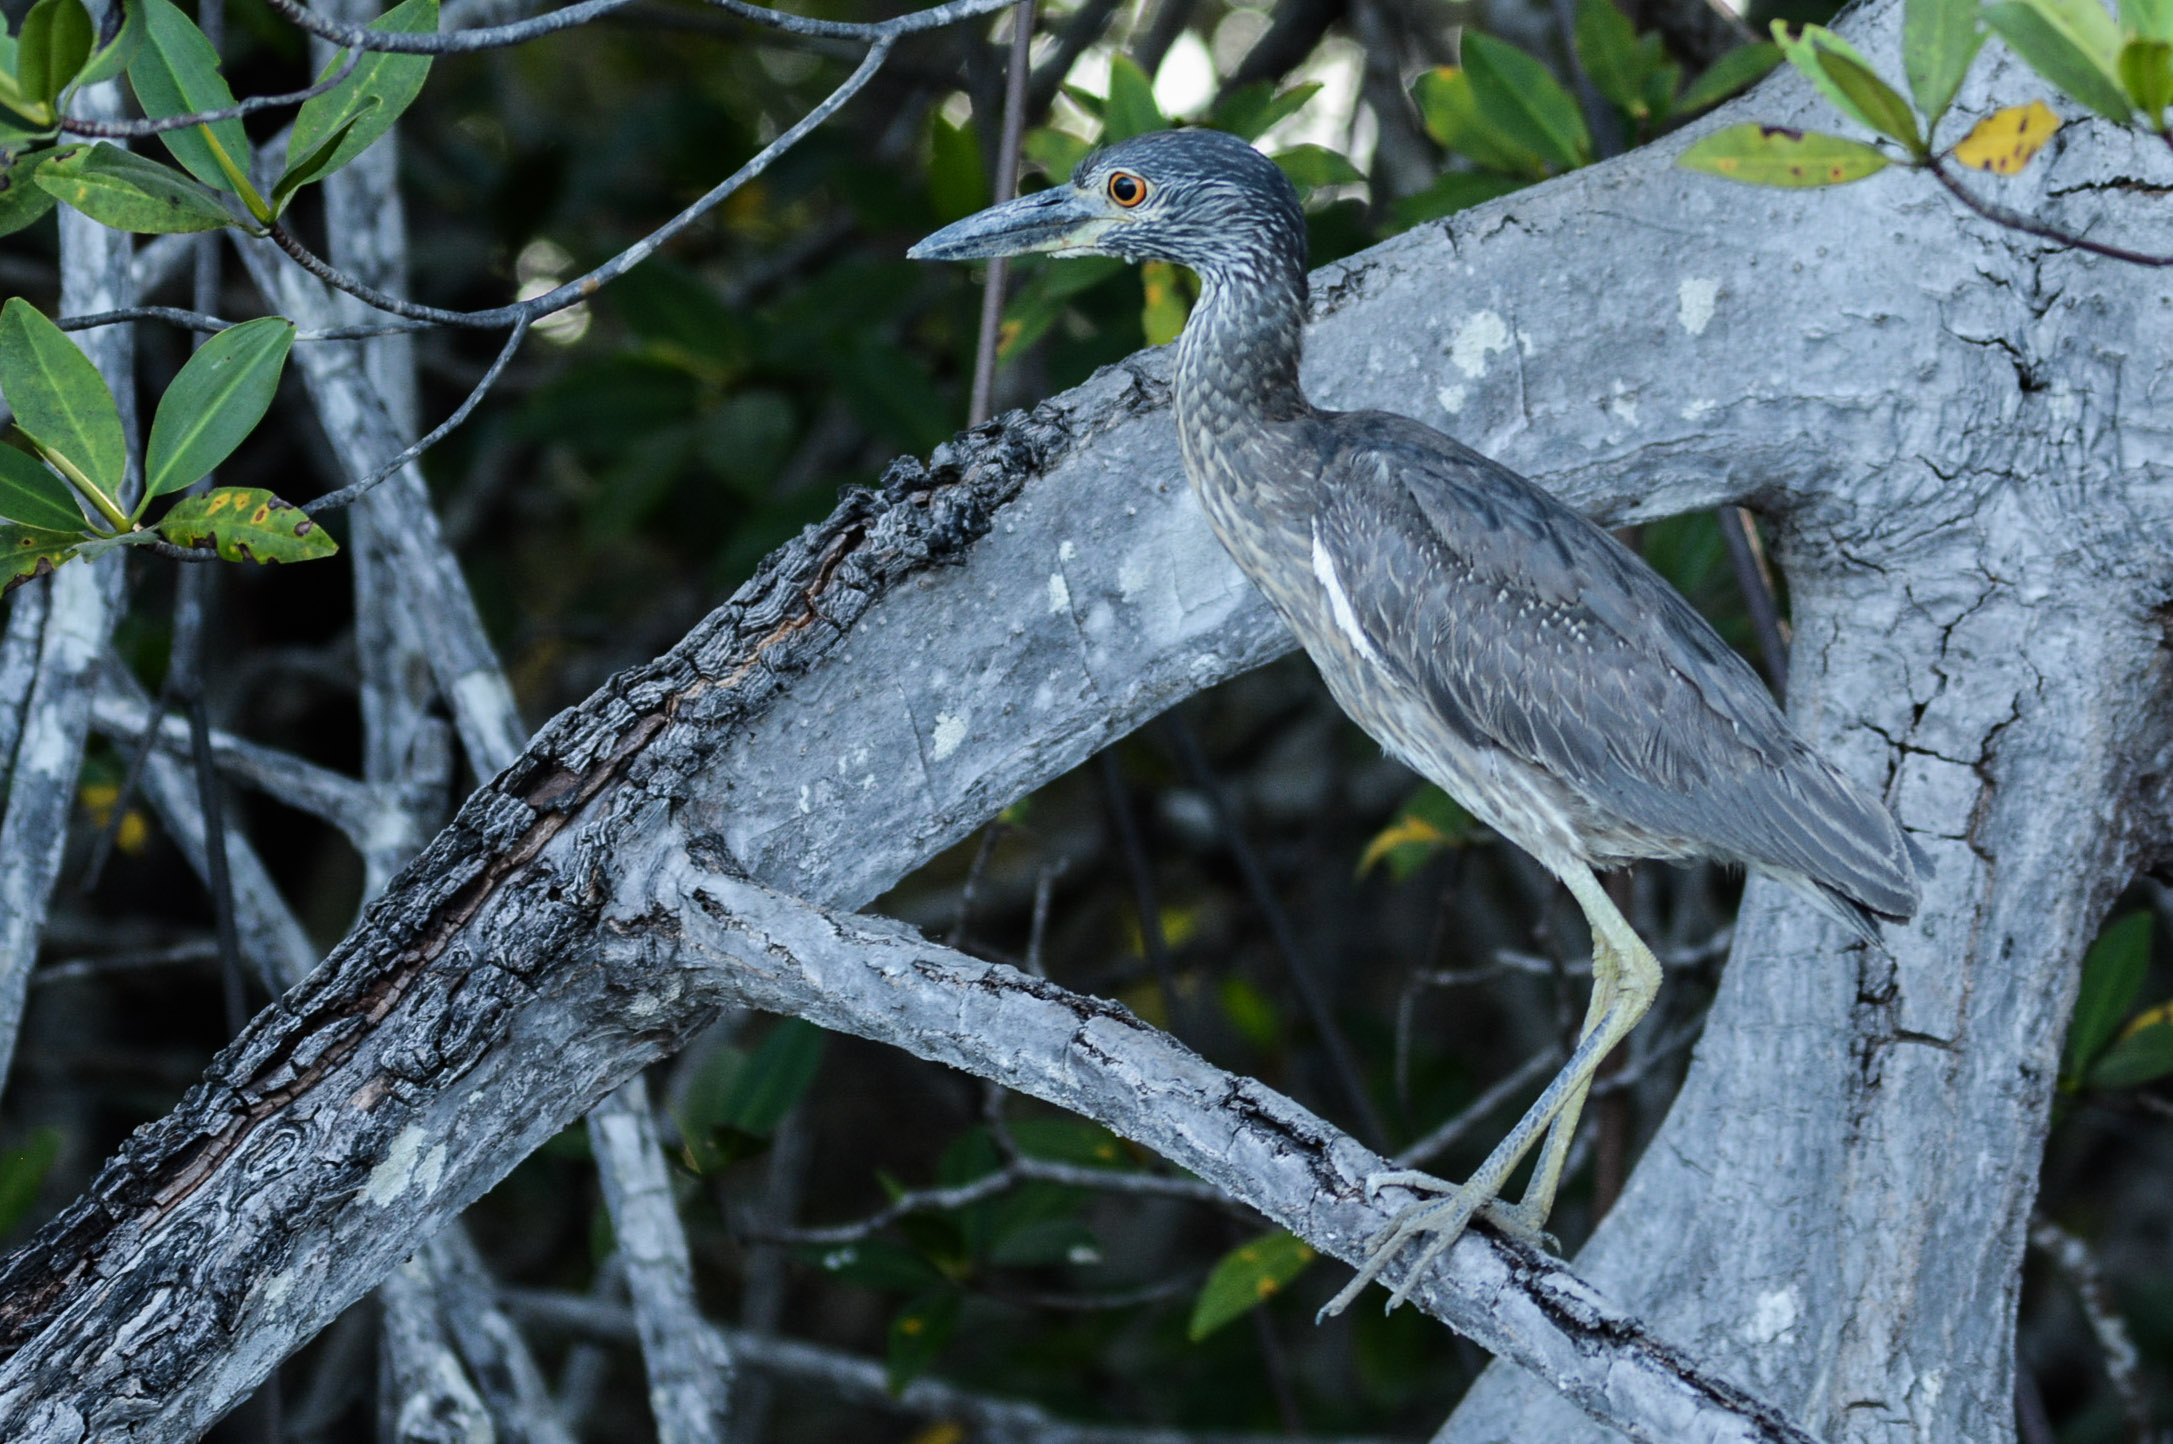 Juvenile Yellow-crested Night-Heron